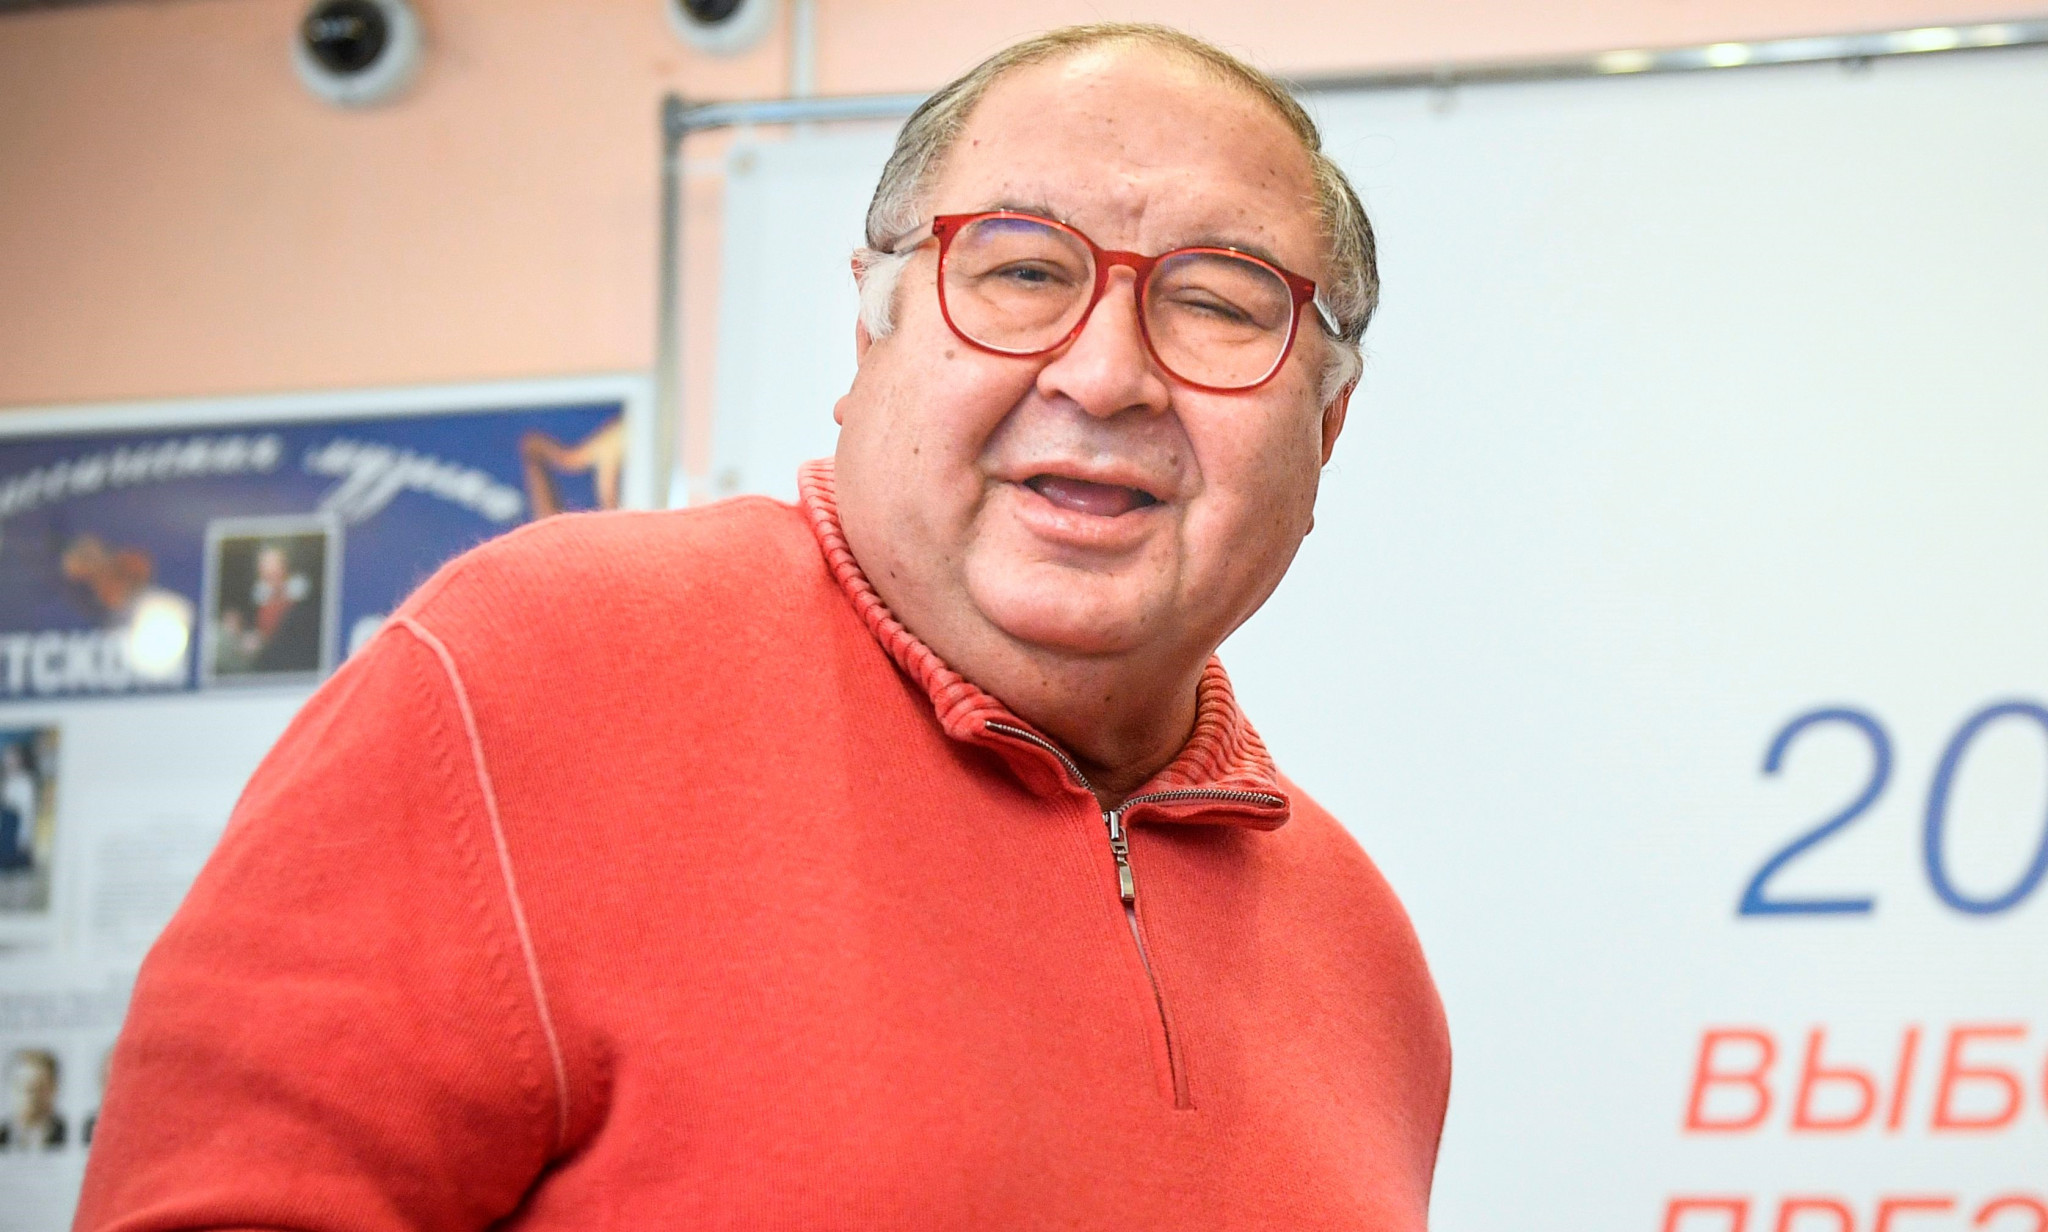 Russian opposition leader Navalny calls for West to impose sanctions on FIE President Usmanov